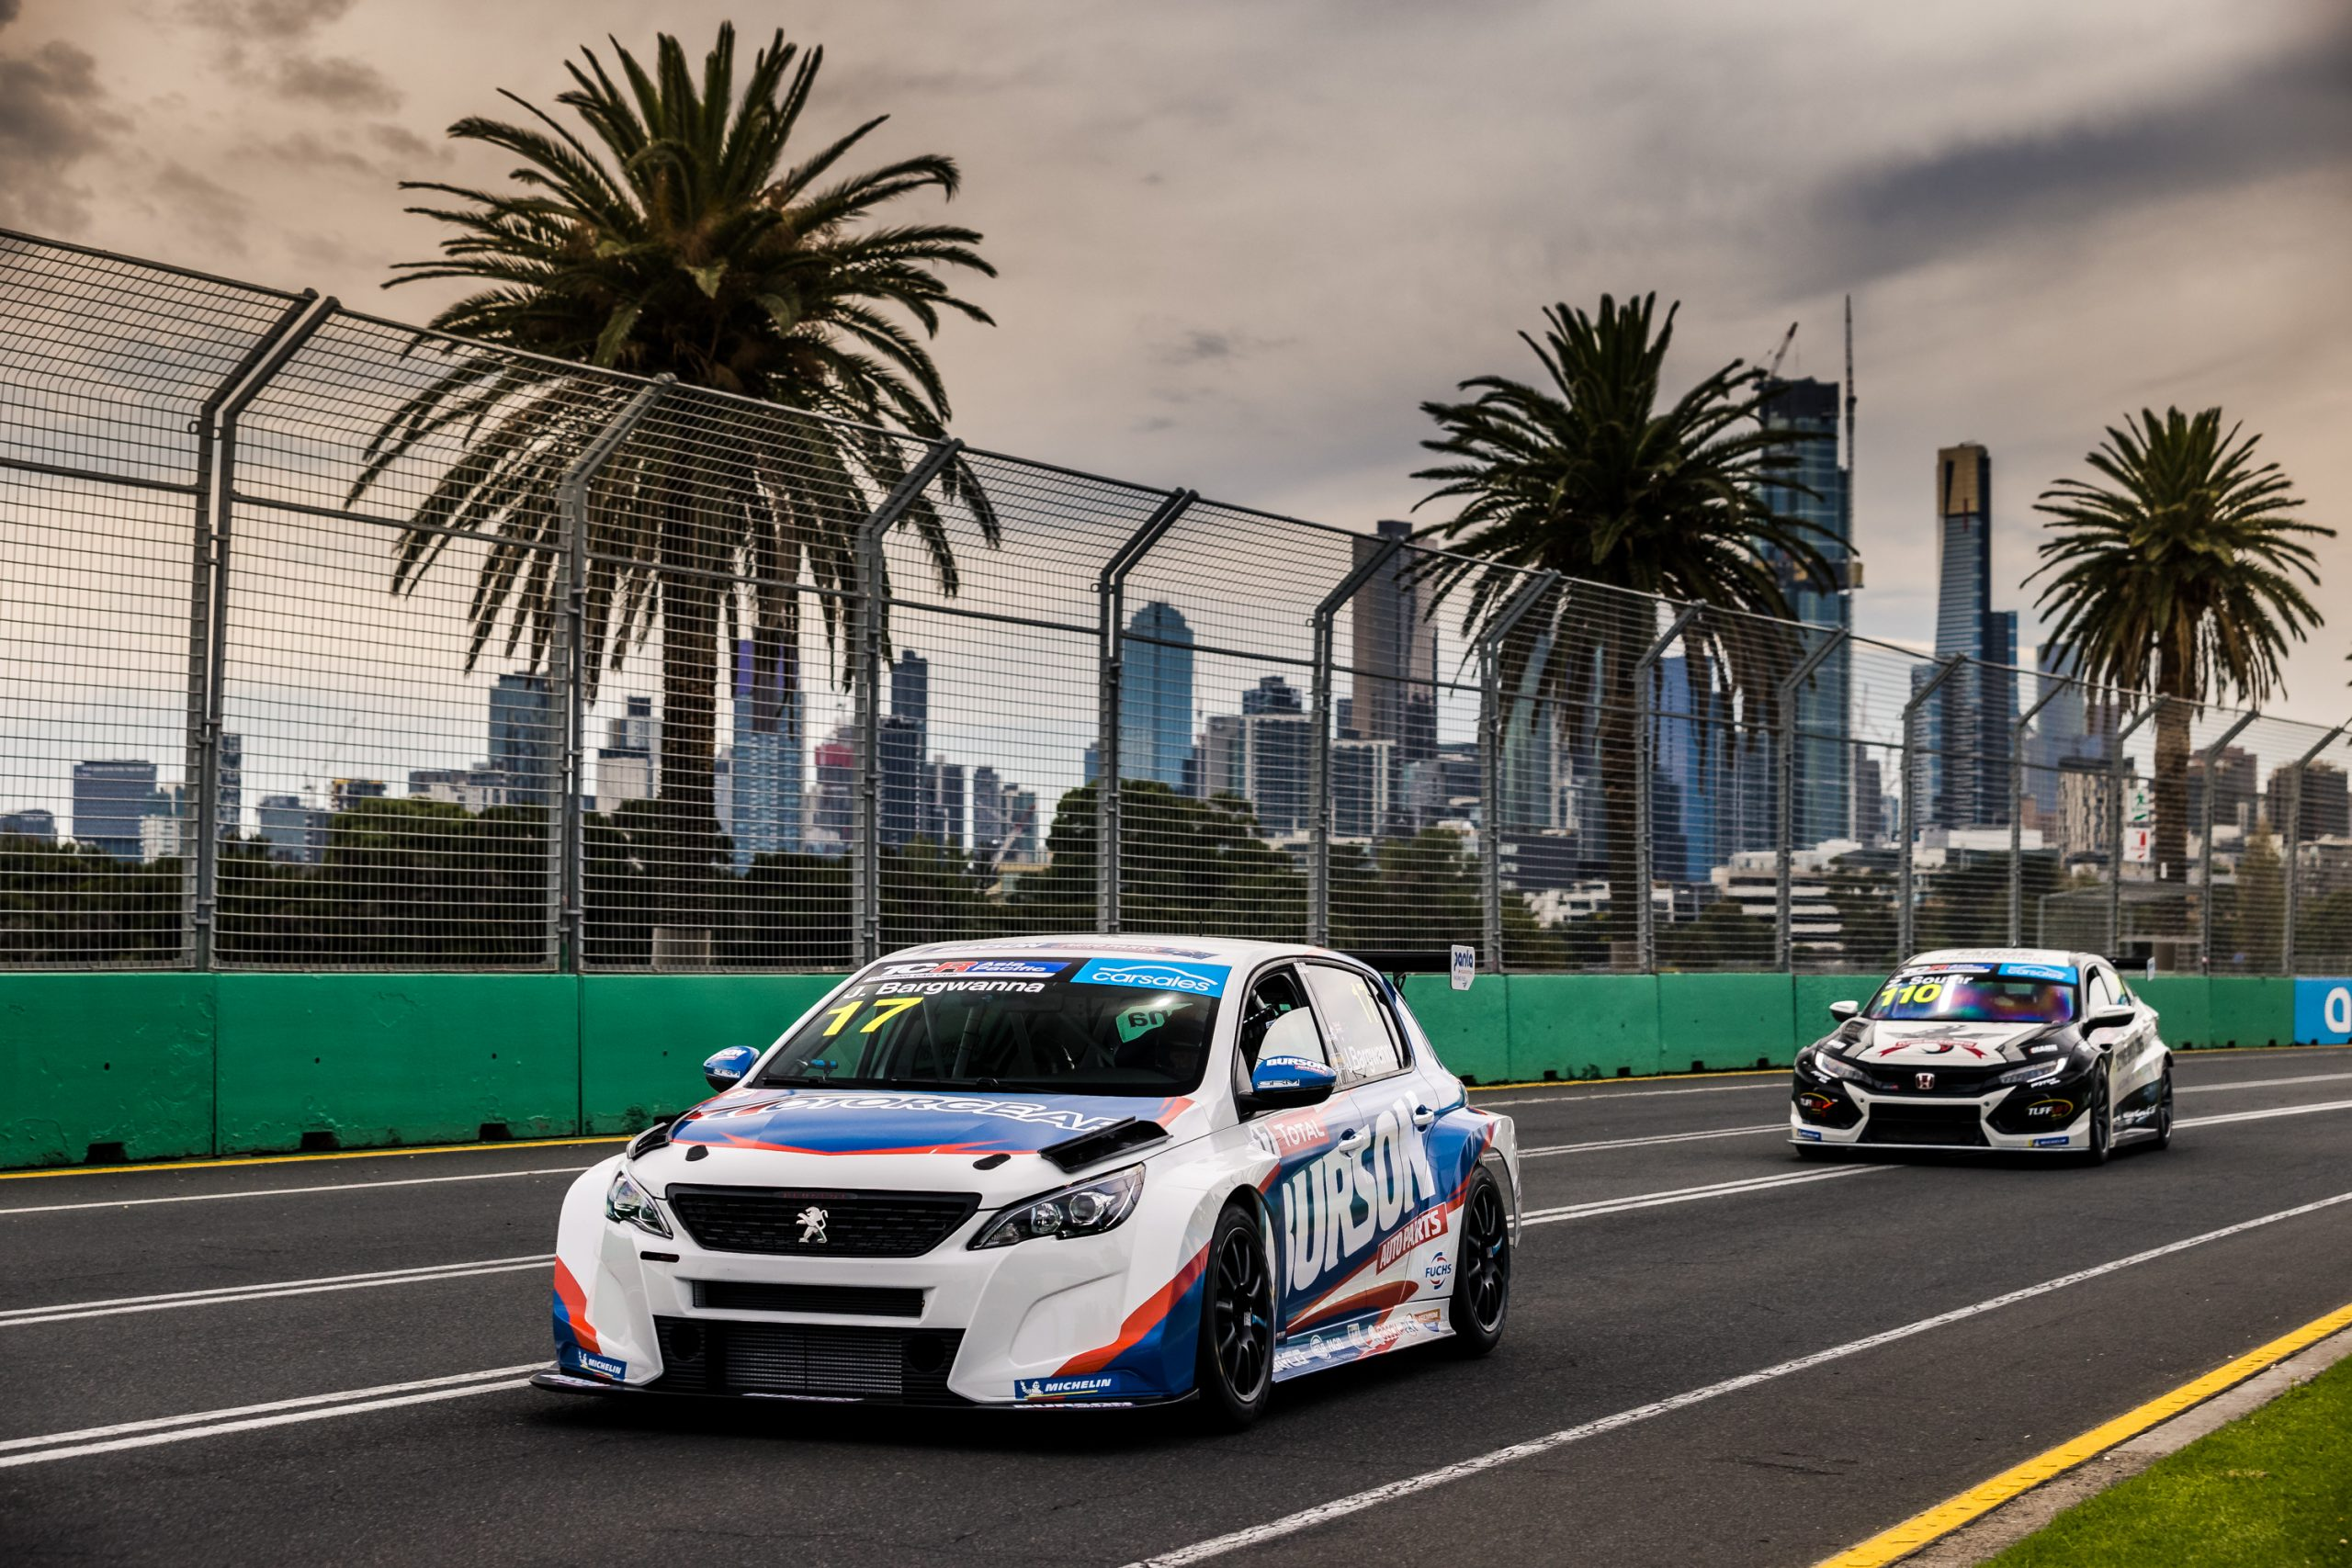 Grid set for opening round of carsales TCR Australia SimRacing Series at Albert Park